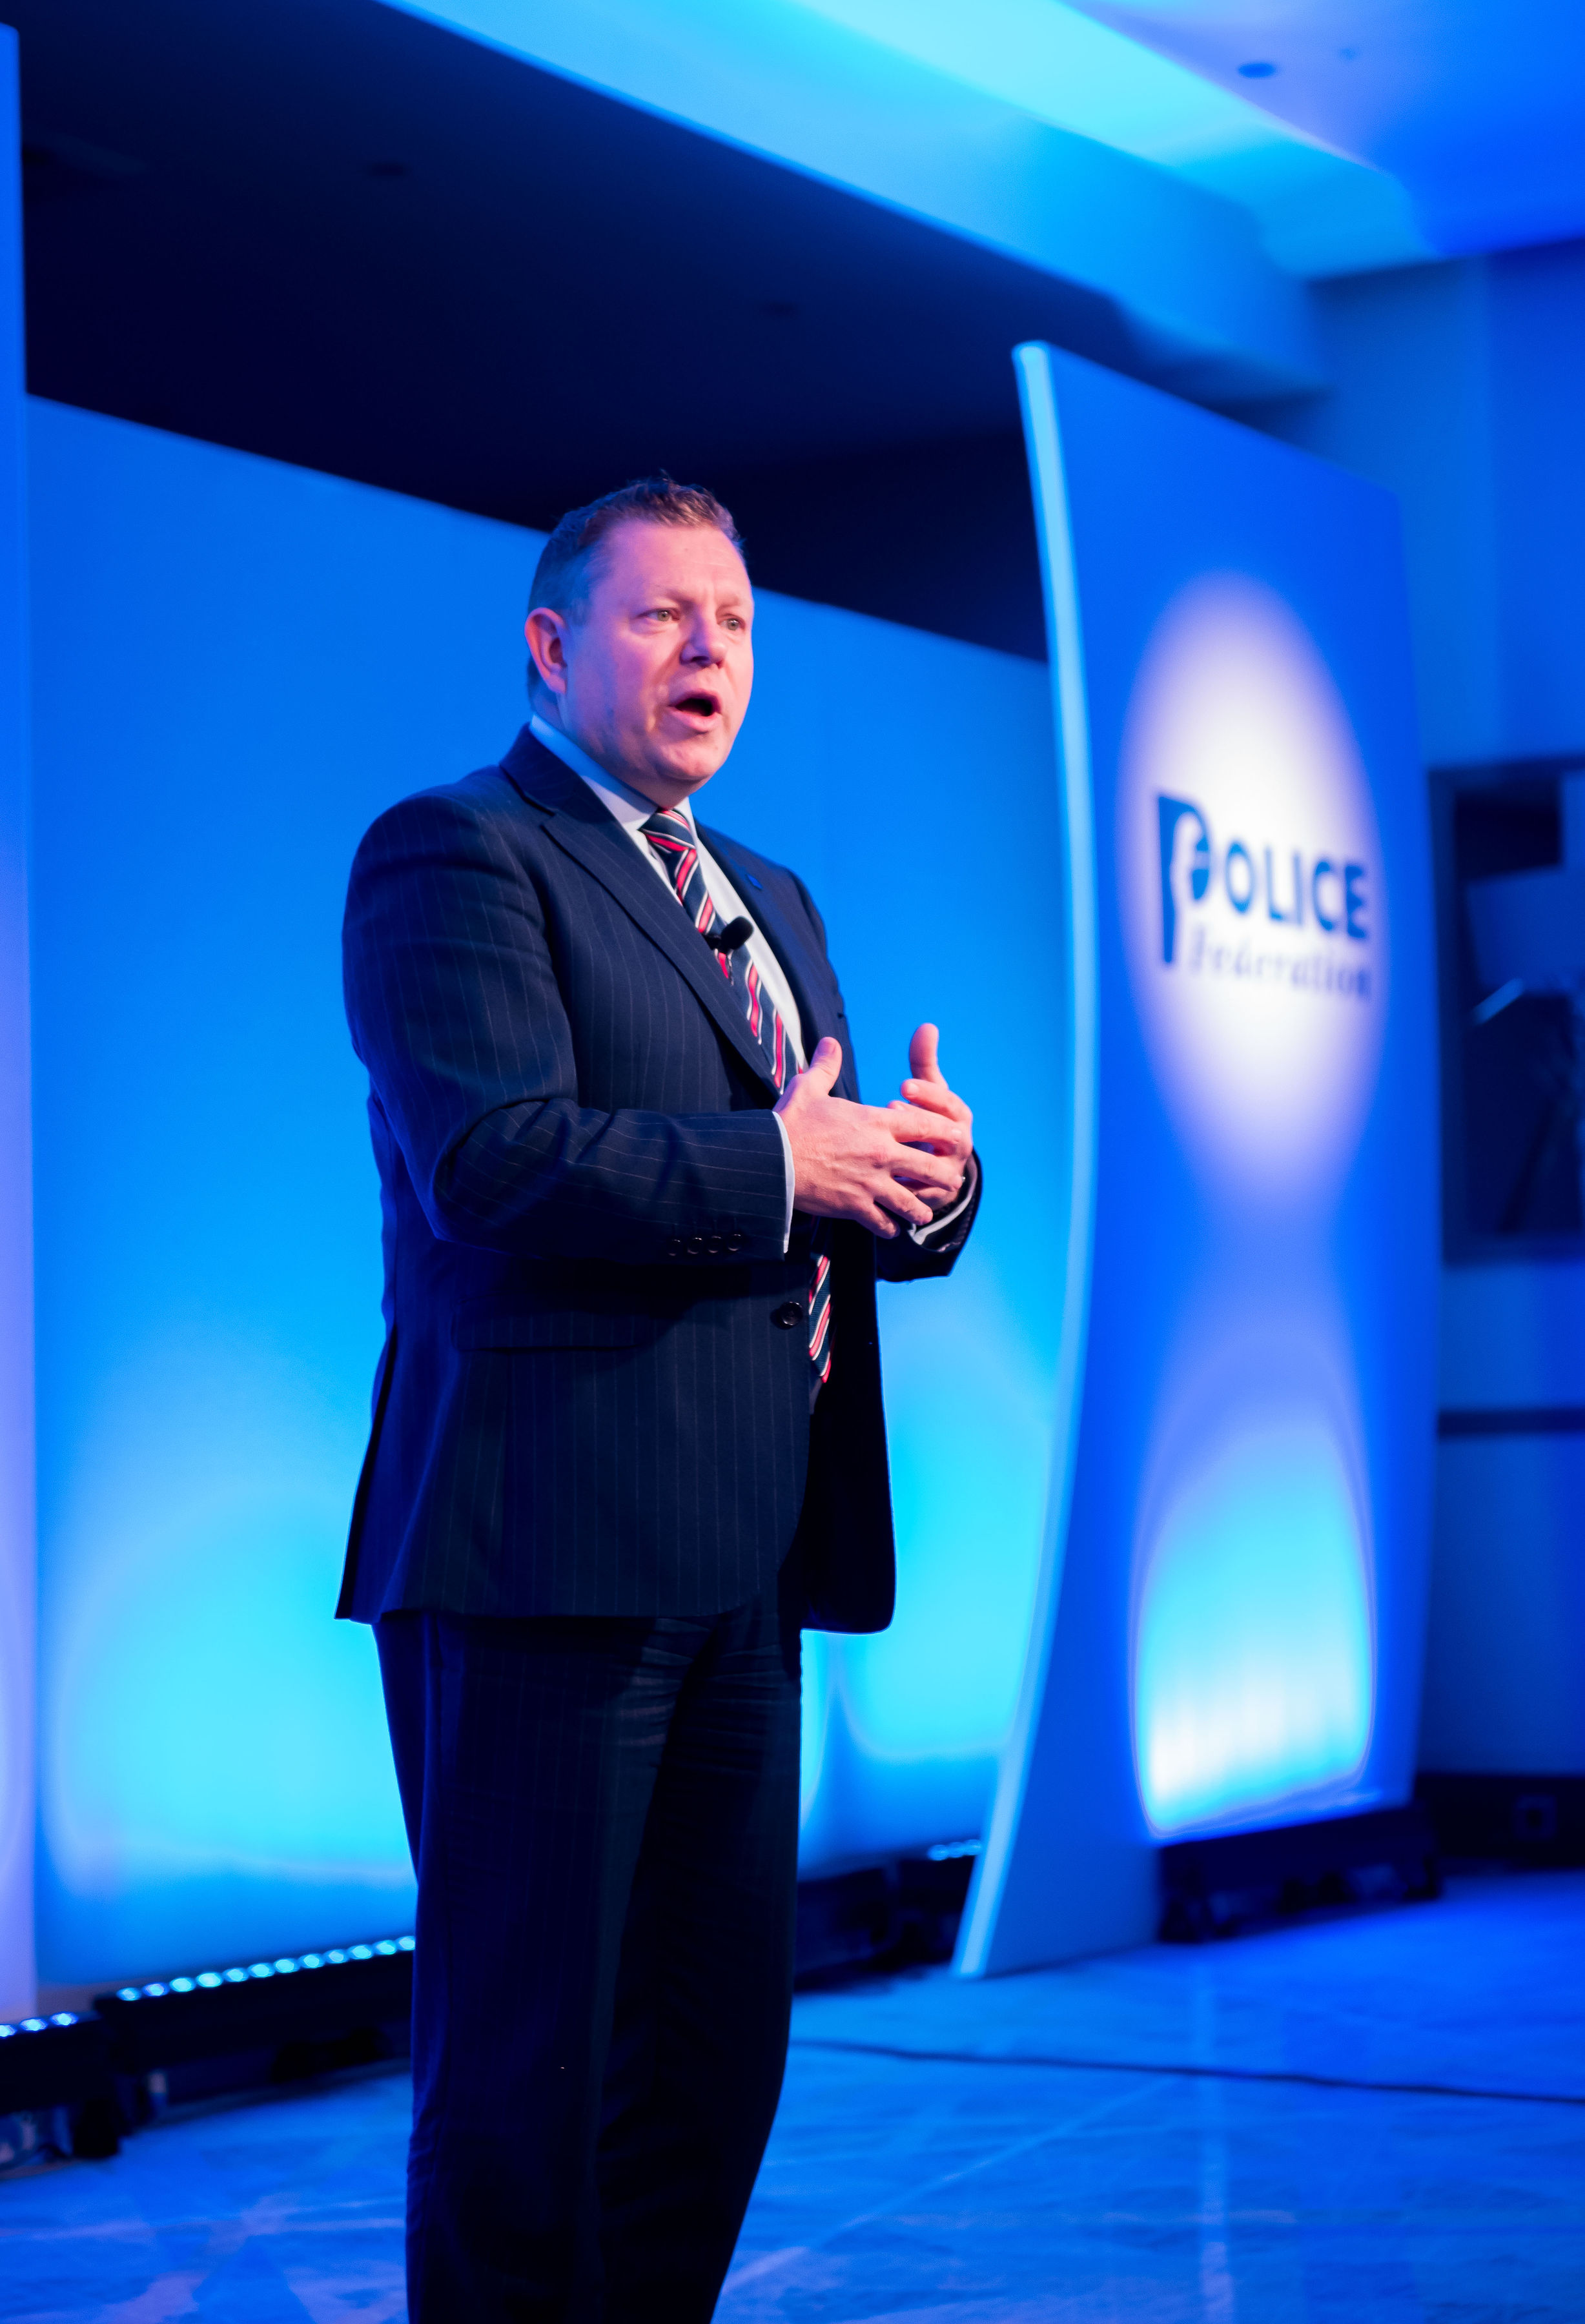 John Apter, PFEW's National Chair addresses the room